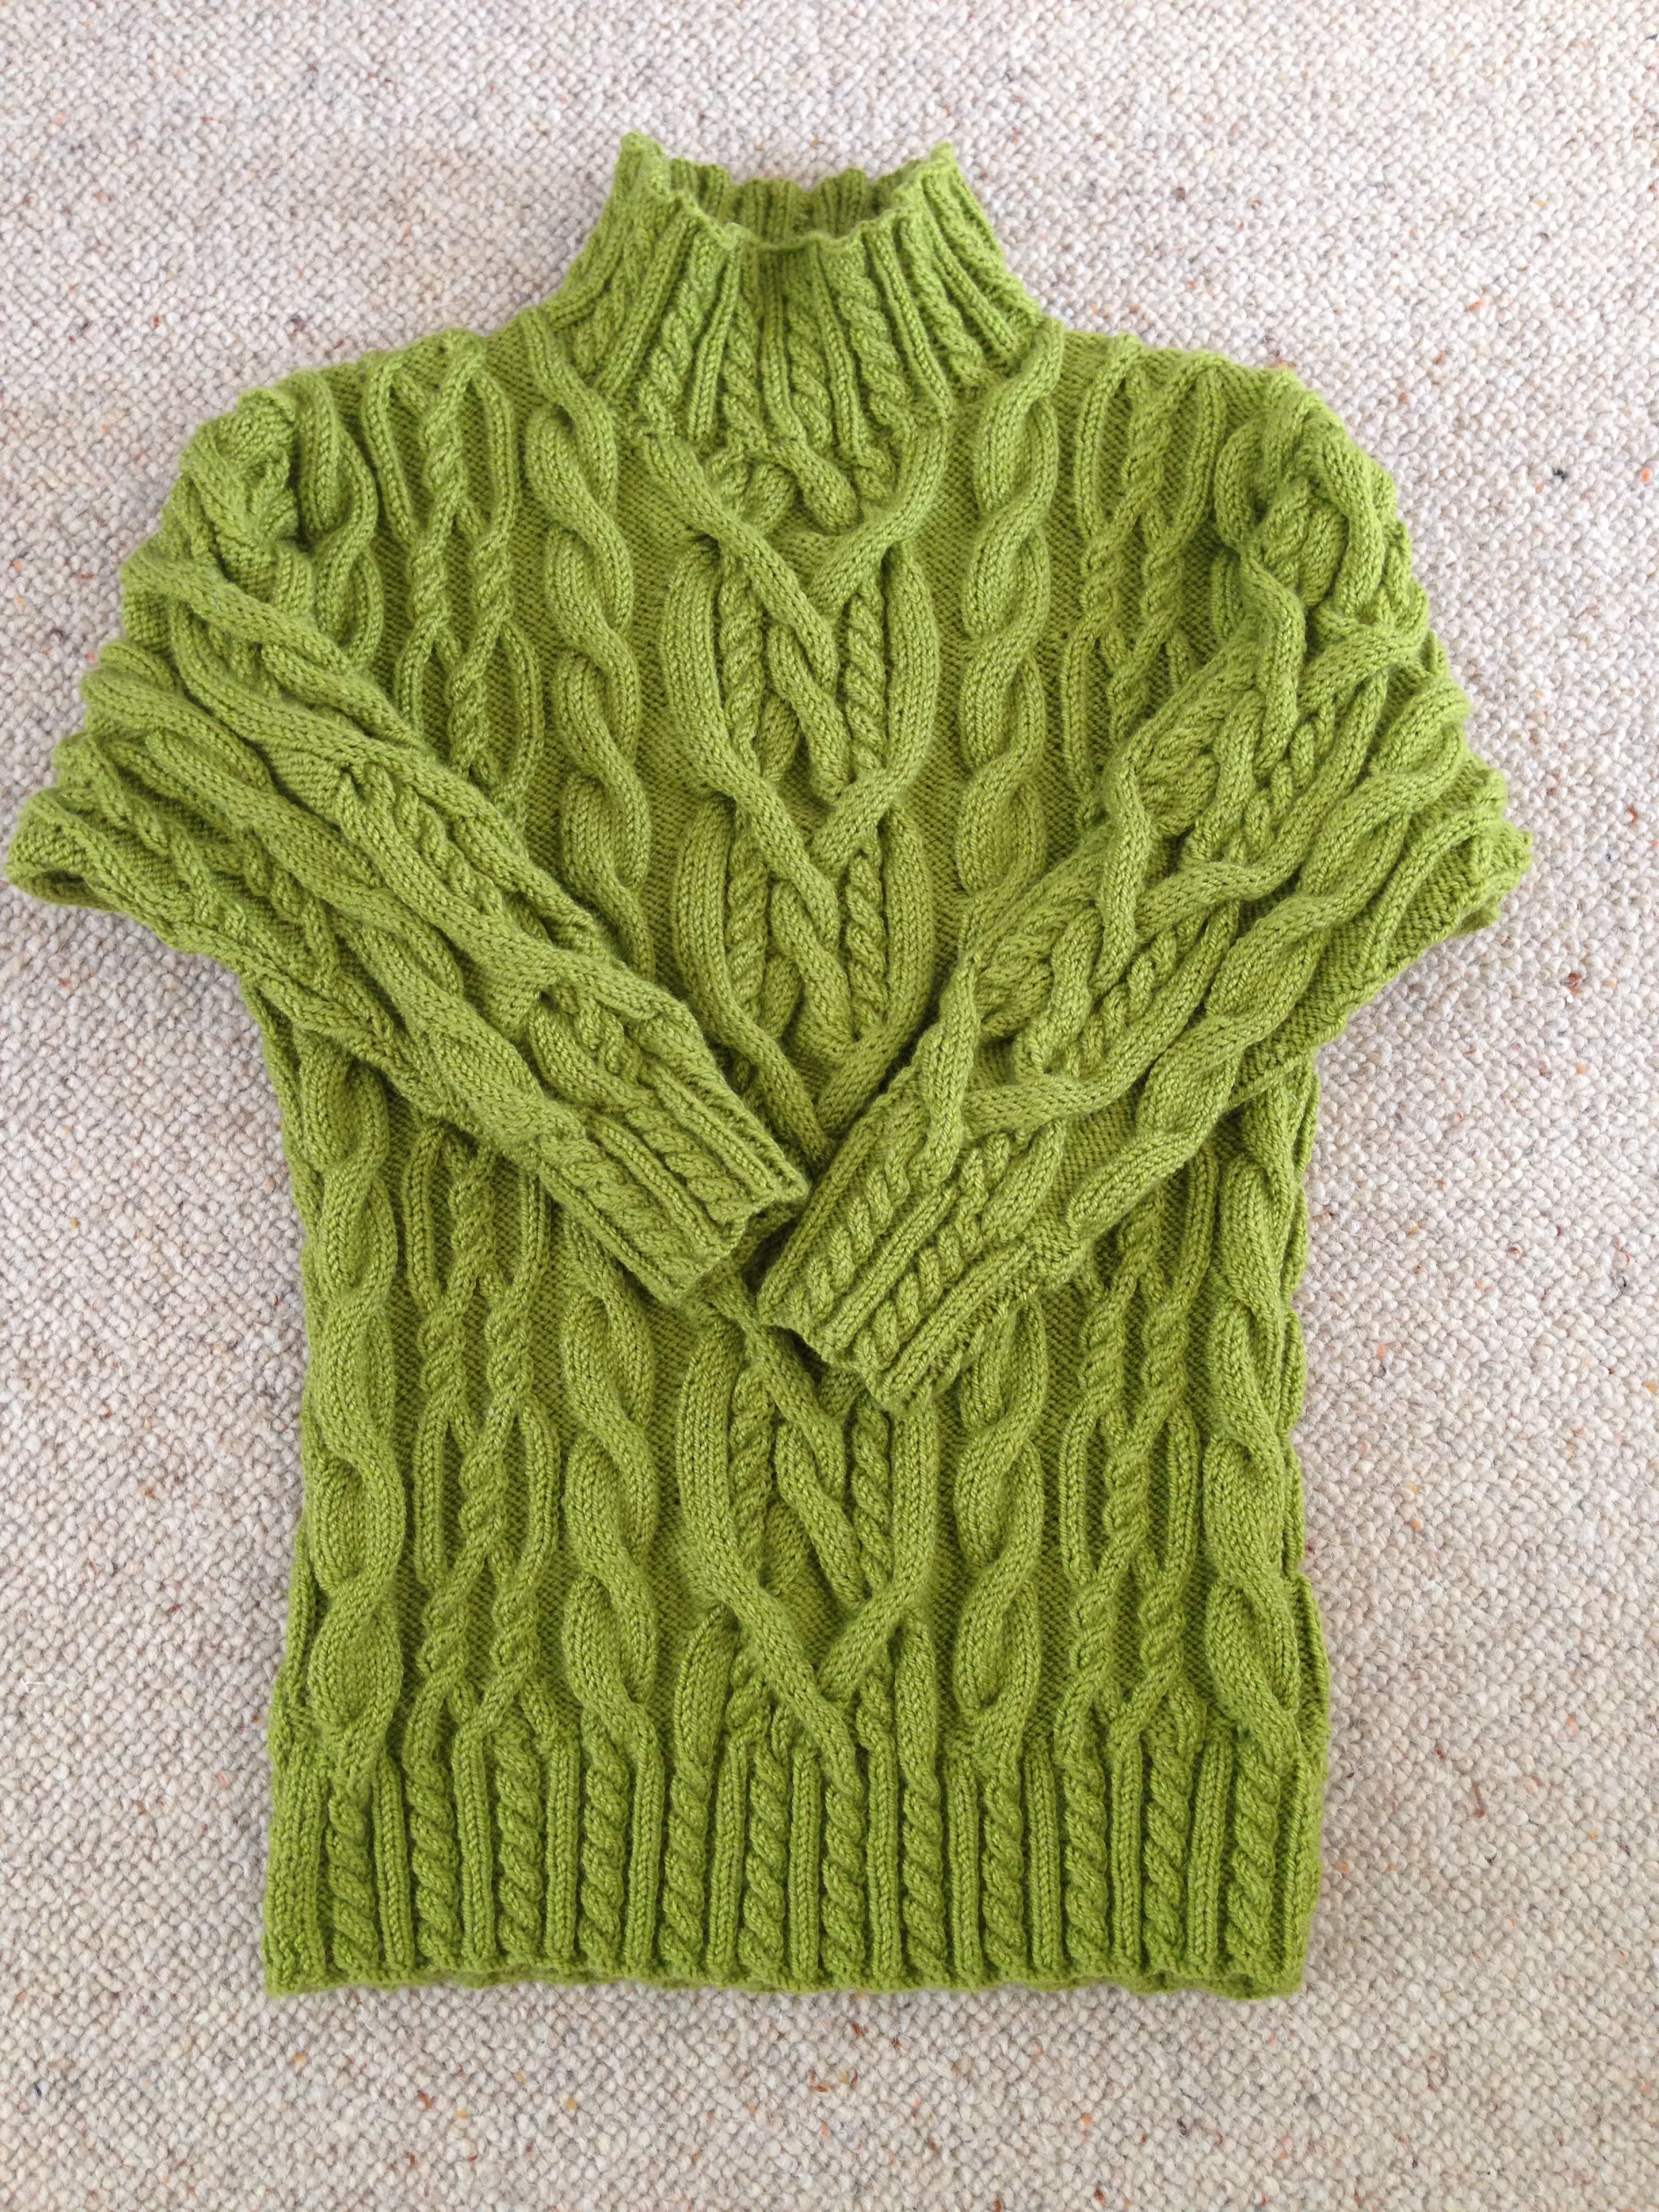 Aran sweater ready for next winter, will use spare yarn on another project